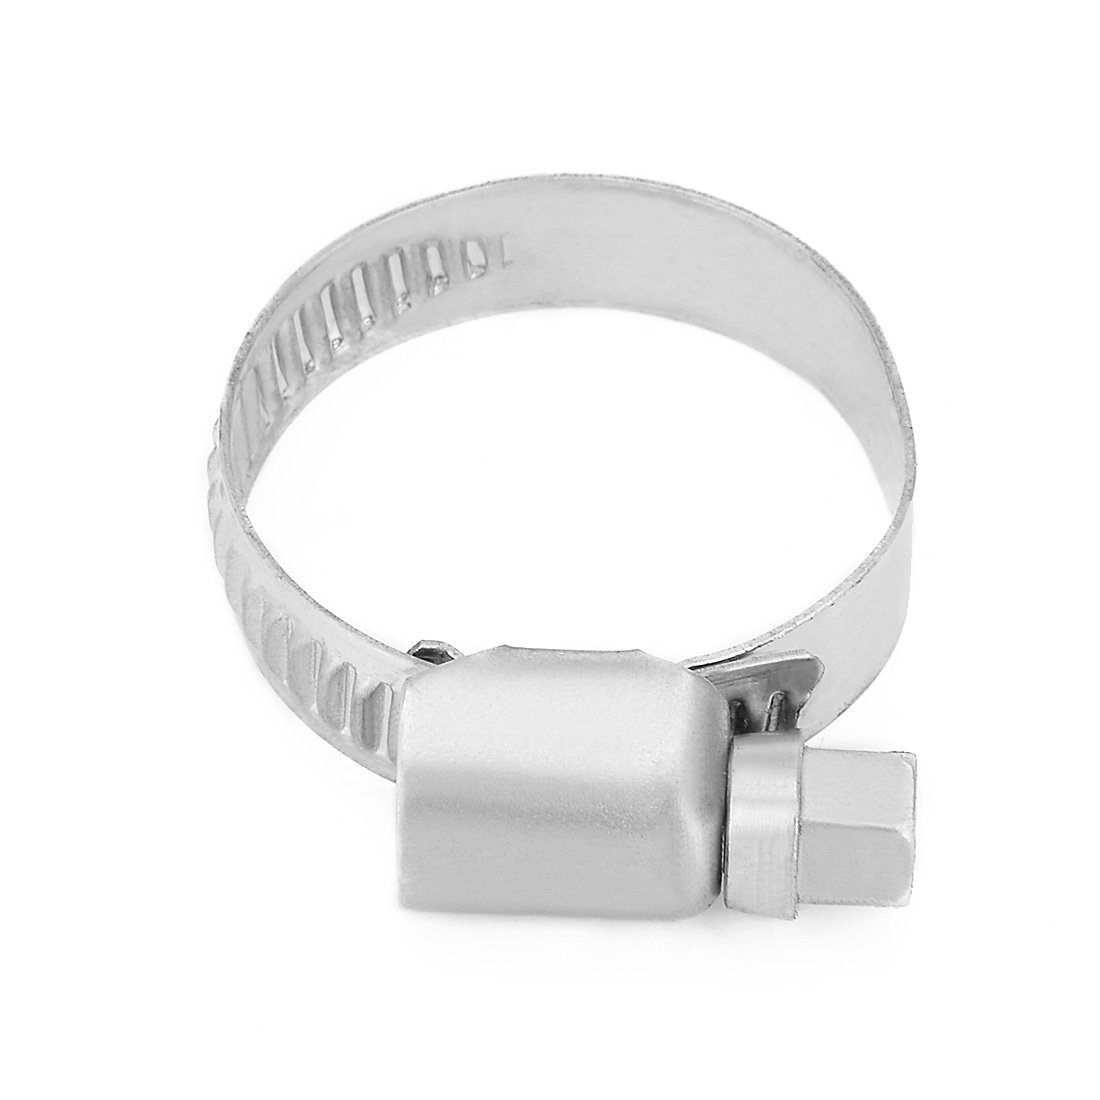 uxcell 59mm to 82mm Dia Range 304 Stainless Steel German Type Hose Clamp Hoop 10pcs